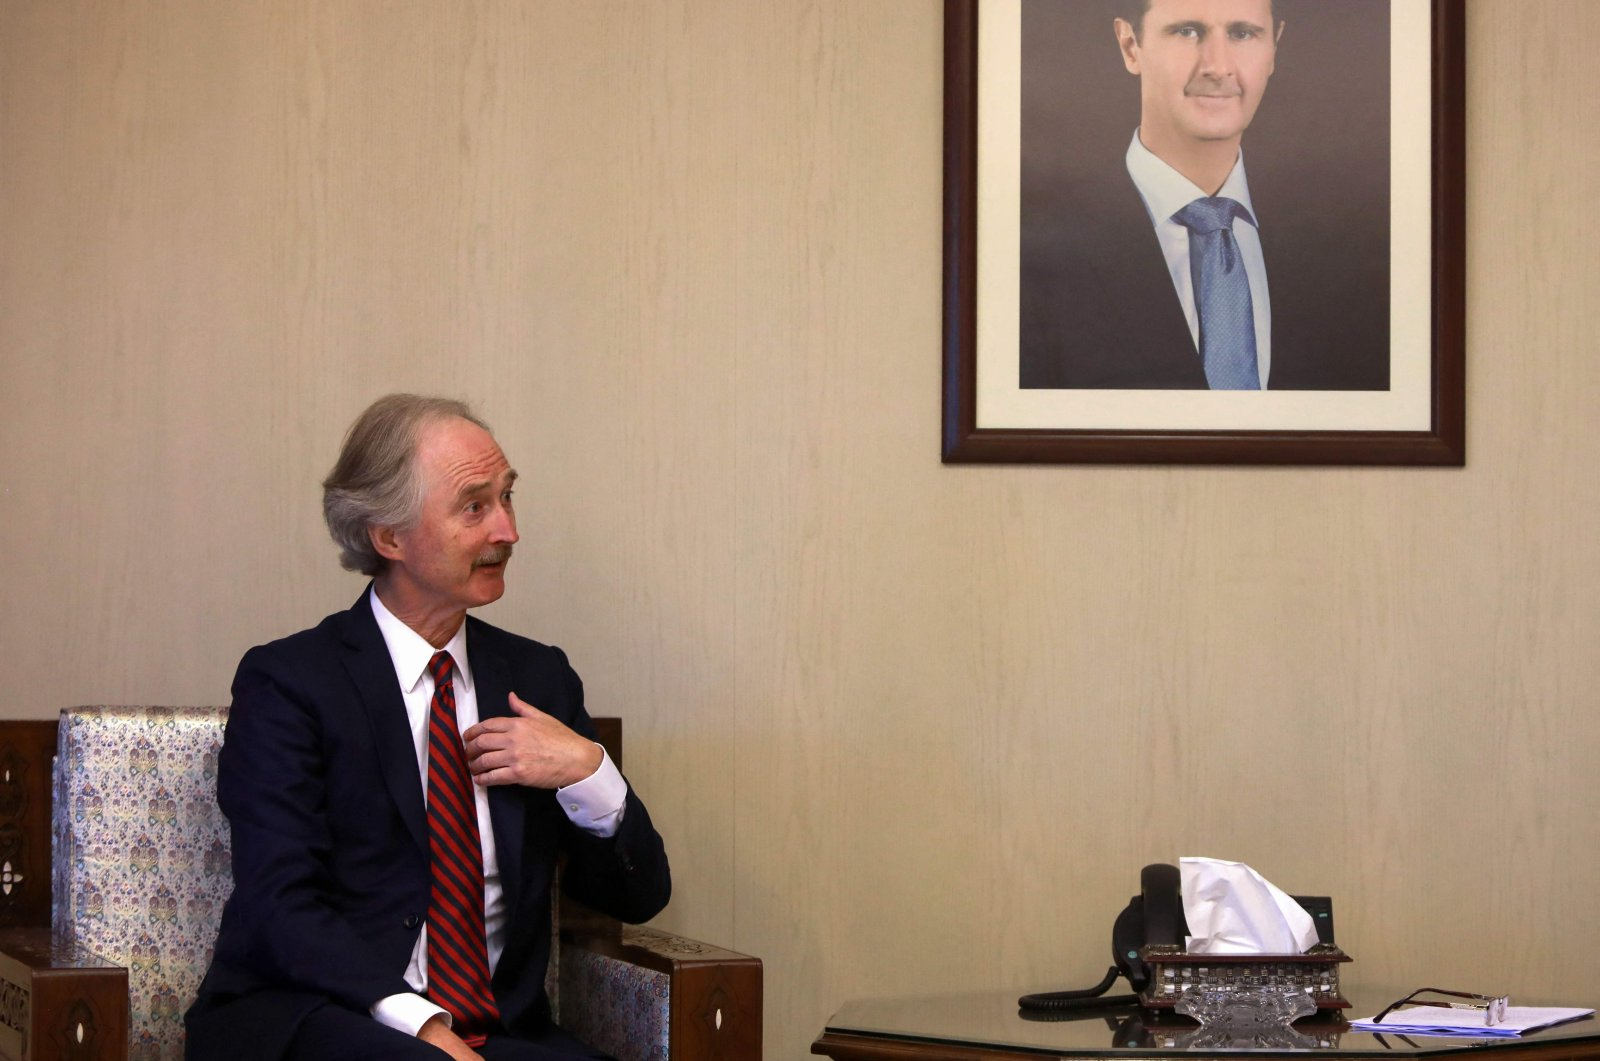 United Nations Special Envoy for Syria Geir Pedersen gestures during a meeting with the Bashar Assadregime's Foreign Minister Faisal Miqdad (not pictured) in Damascus, Syria, Sept. 11, 2021. (AFP Photo)